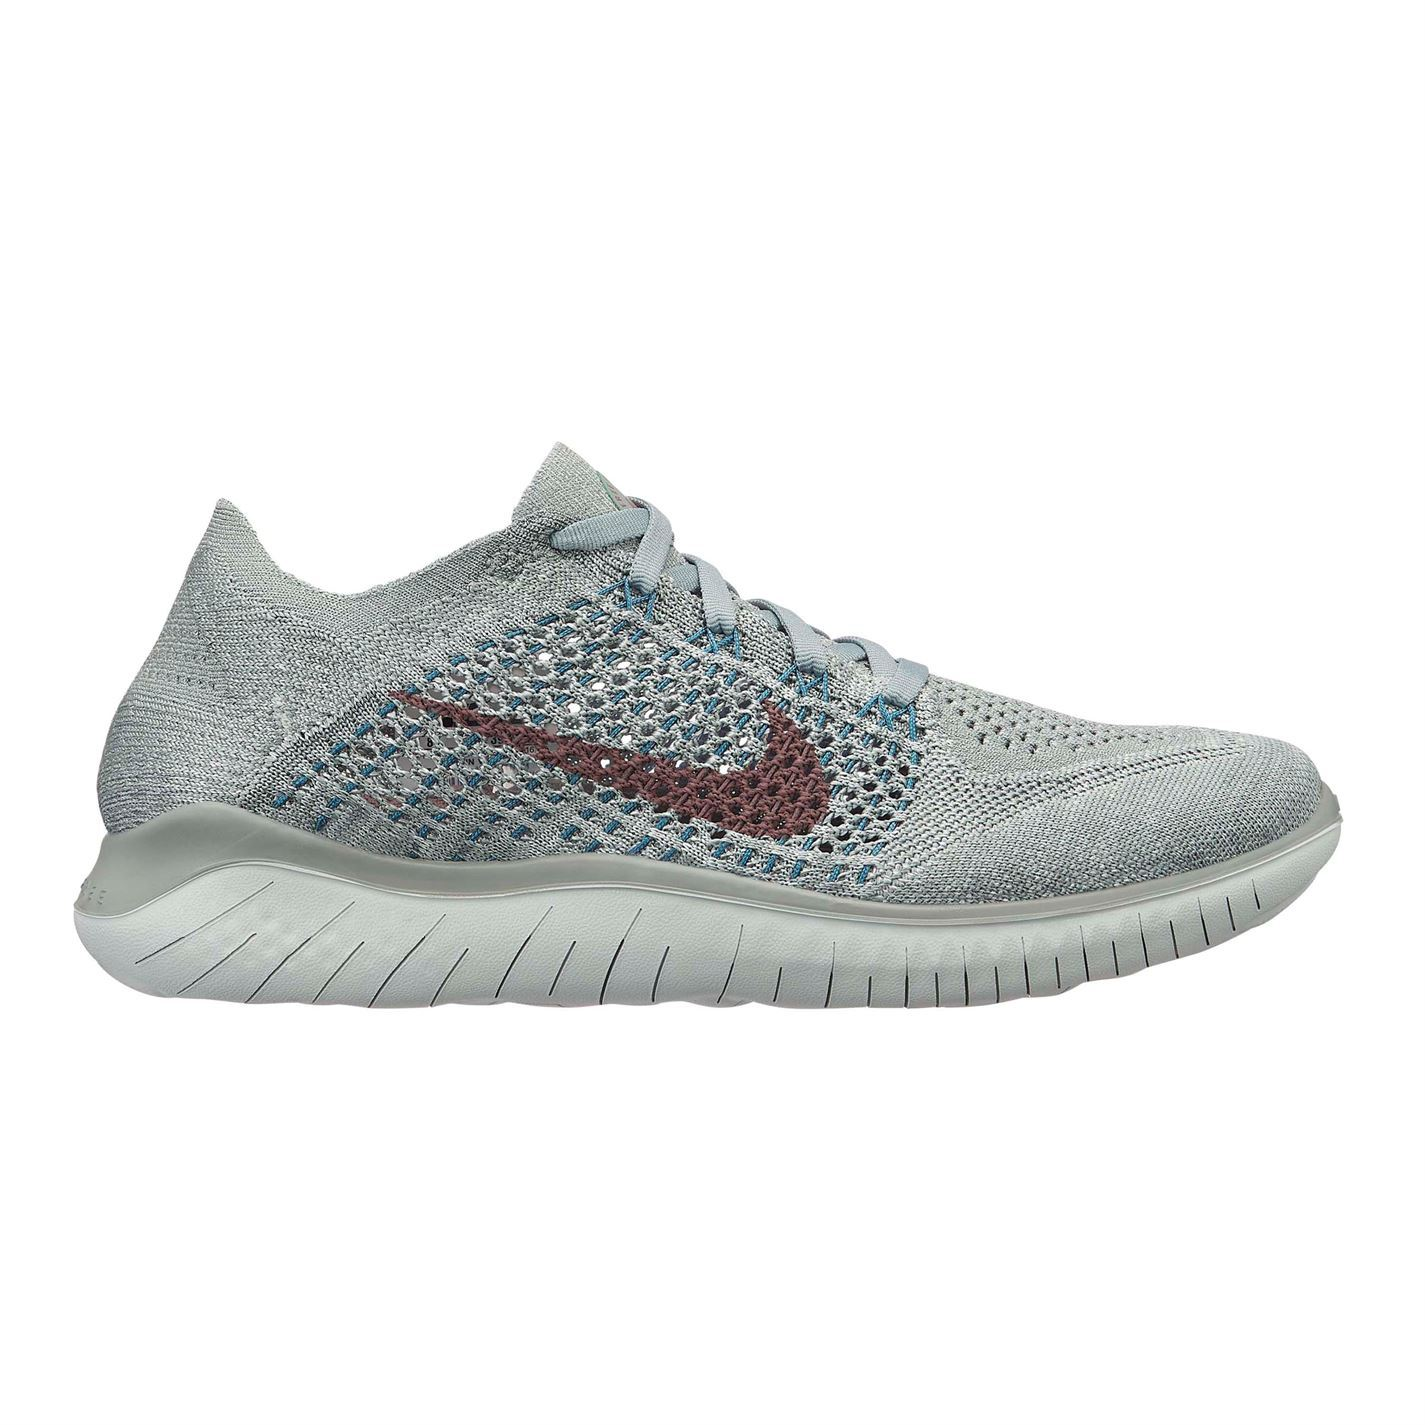 Details about Nike Free RN Flyknit Running Shoes Womens Jogging Trainers Sneakers Fitness